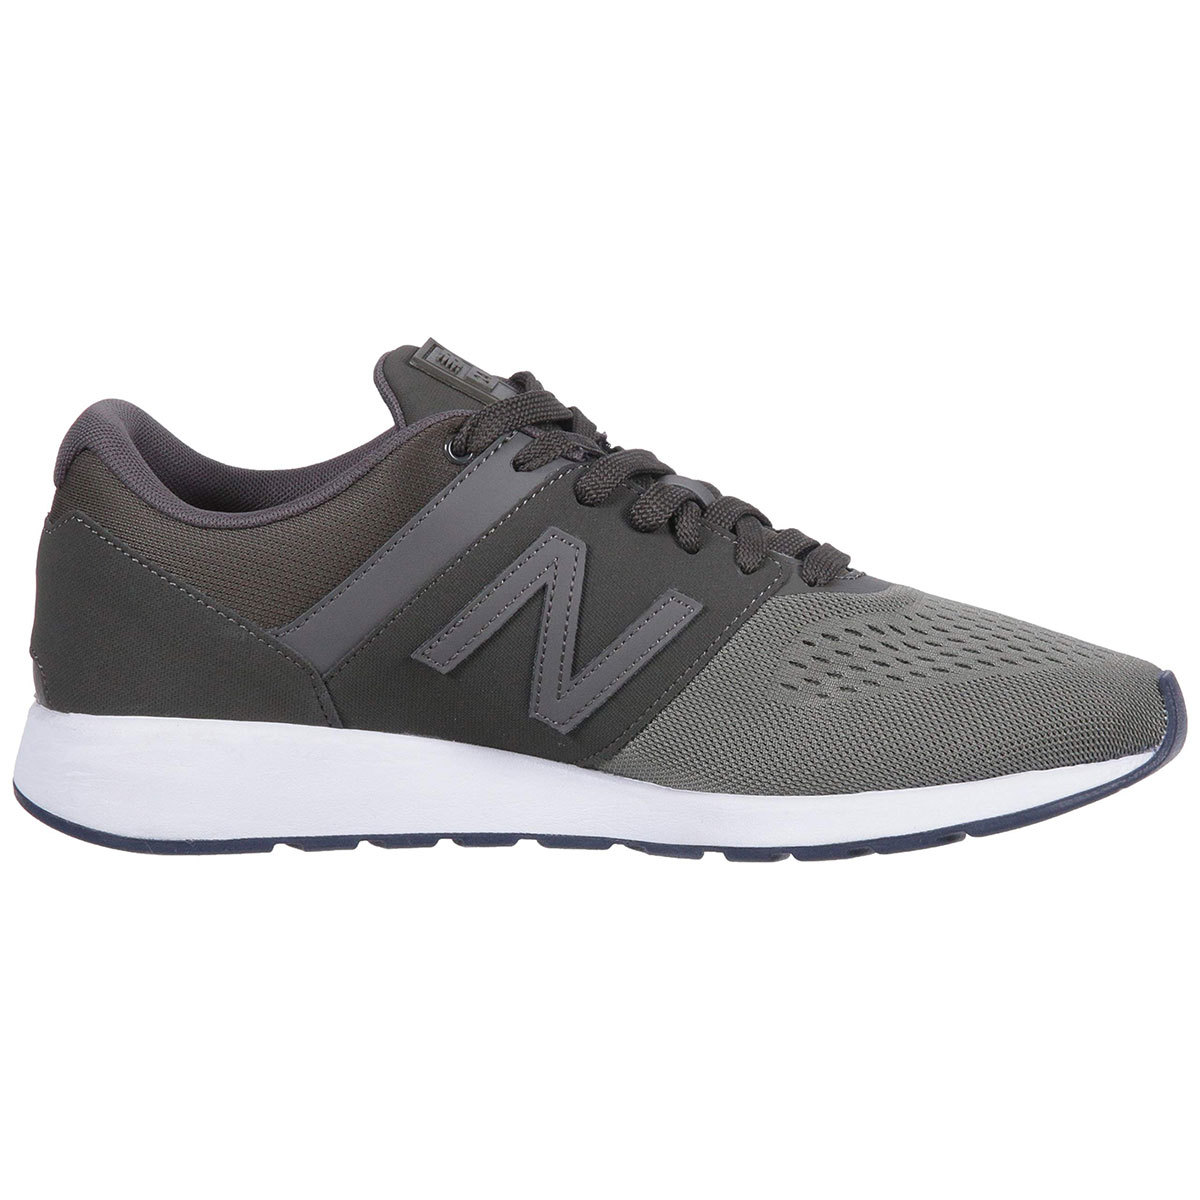 New Balance Men's 24 Textile Sneakers - Green, 10.5